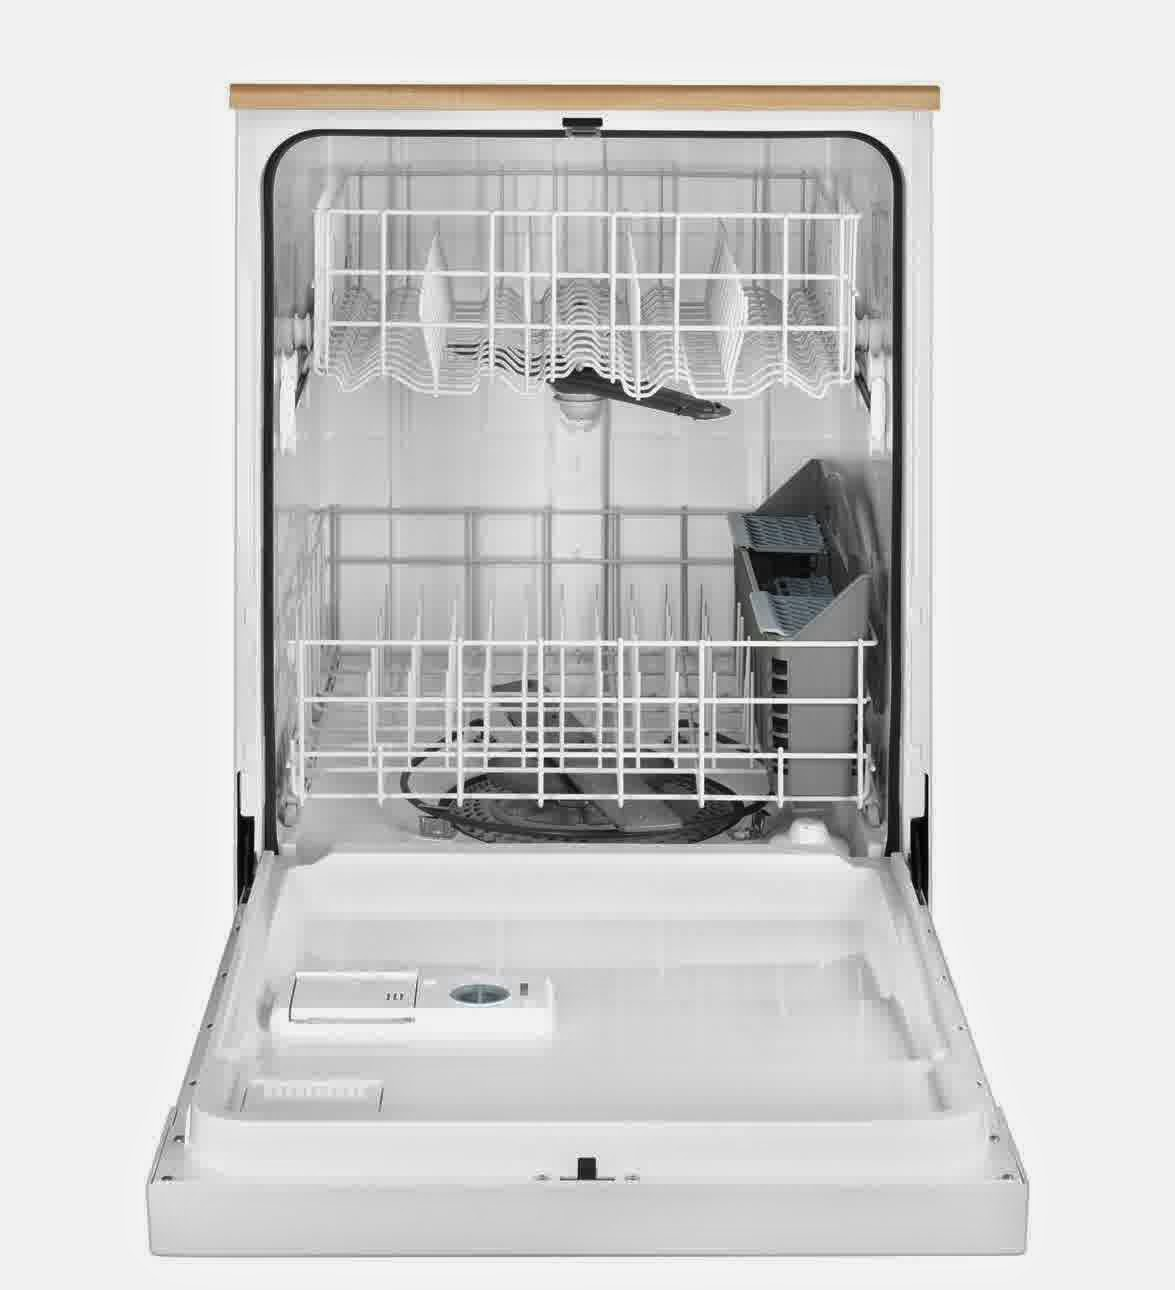 Comparing The Maytag Portable Dishwasher With Another Brand